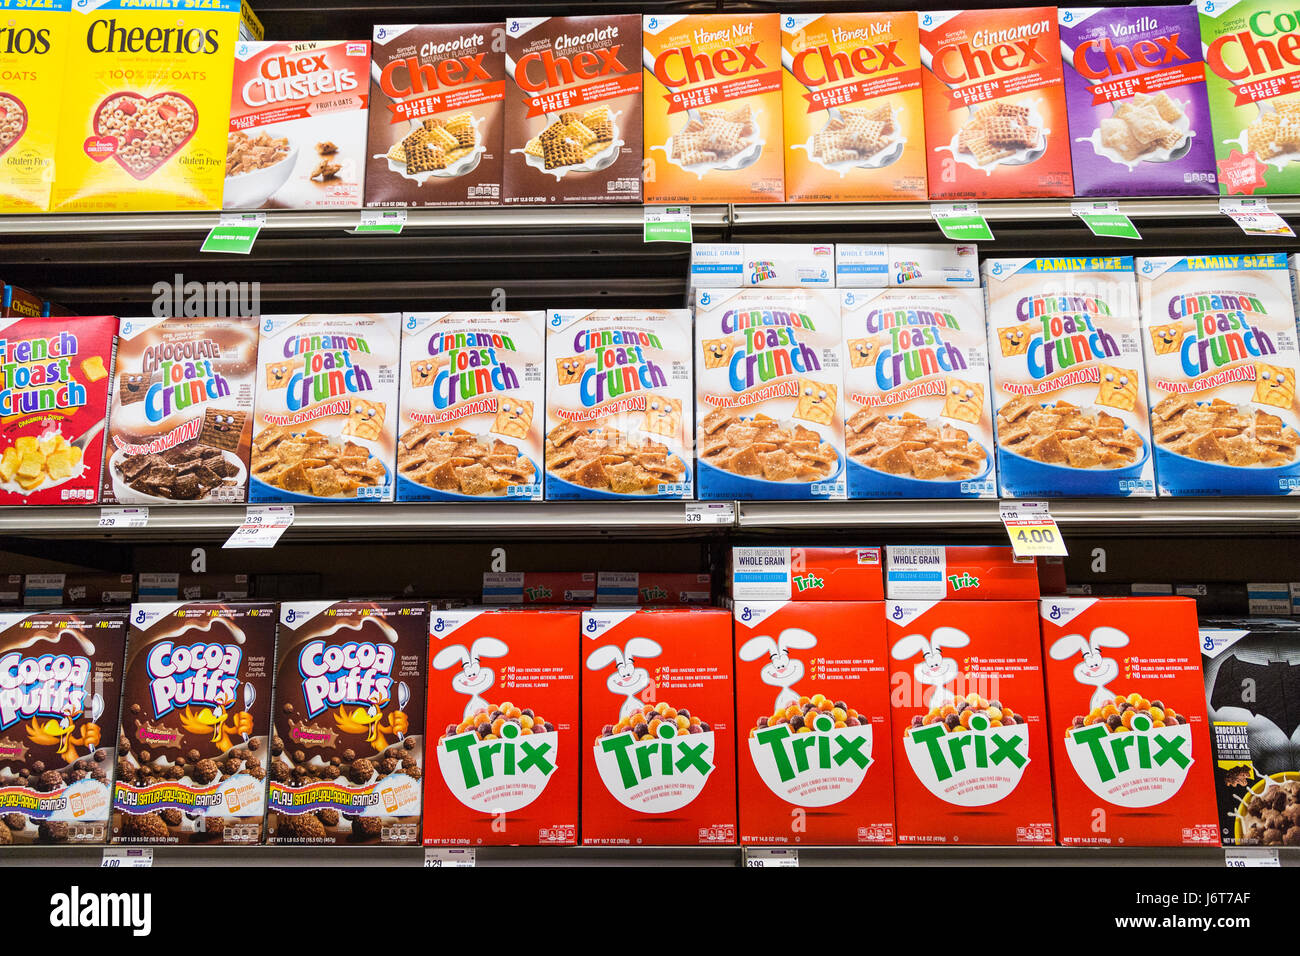 boxes breakfast cereal on shelves at a grocery store - Stock Image